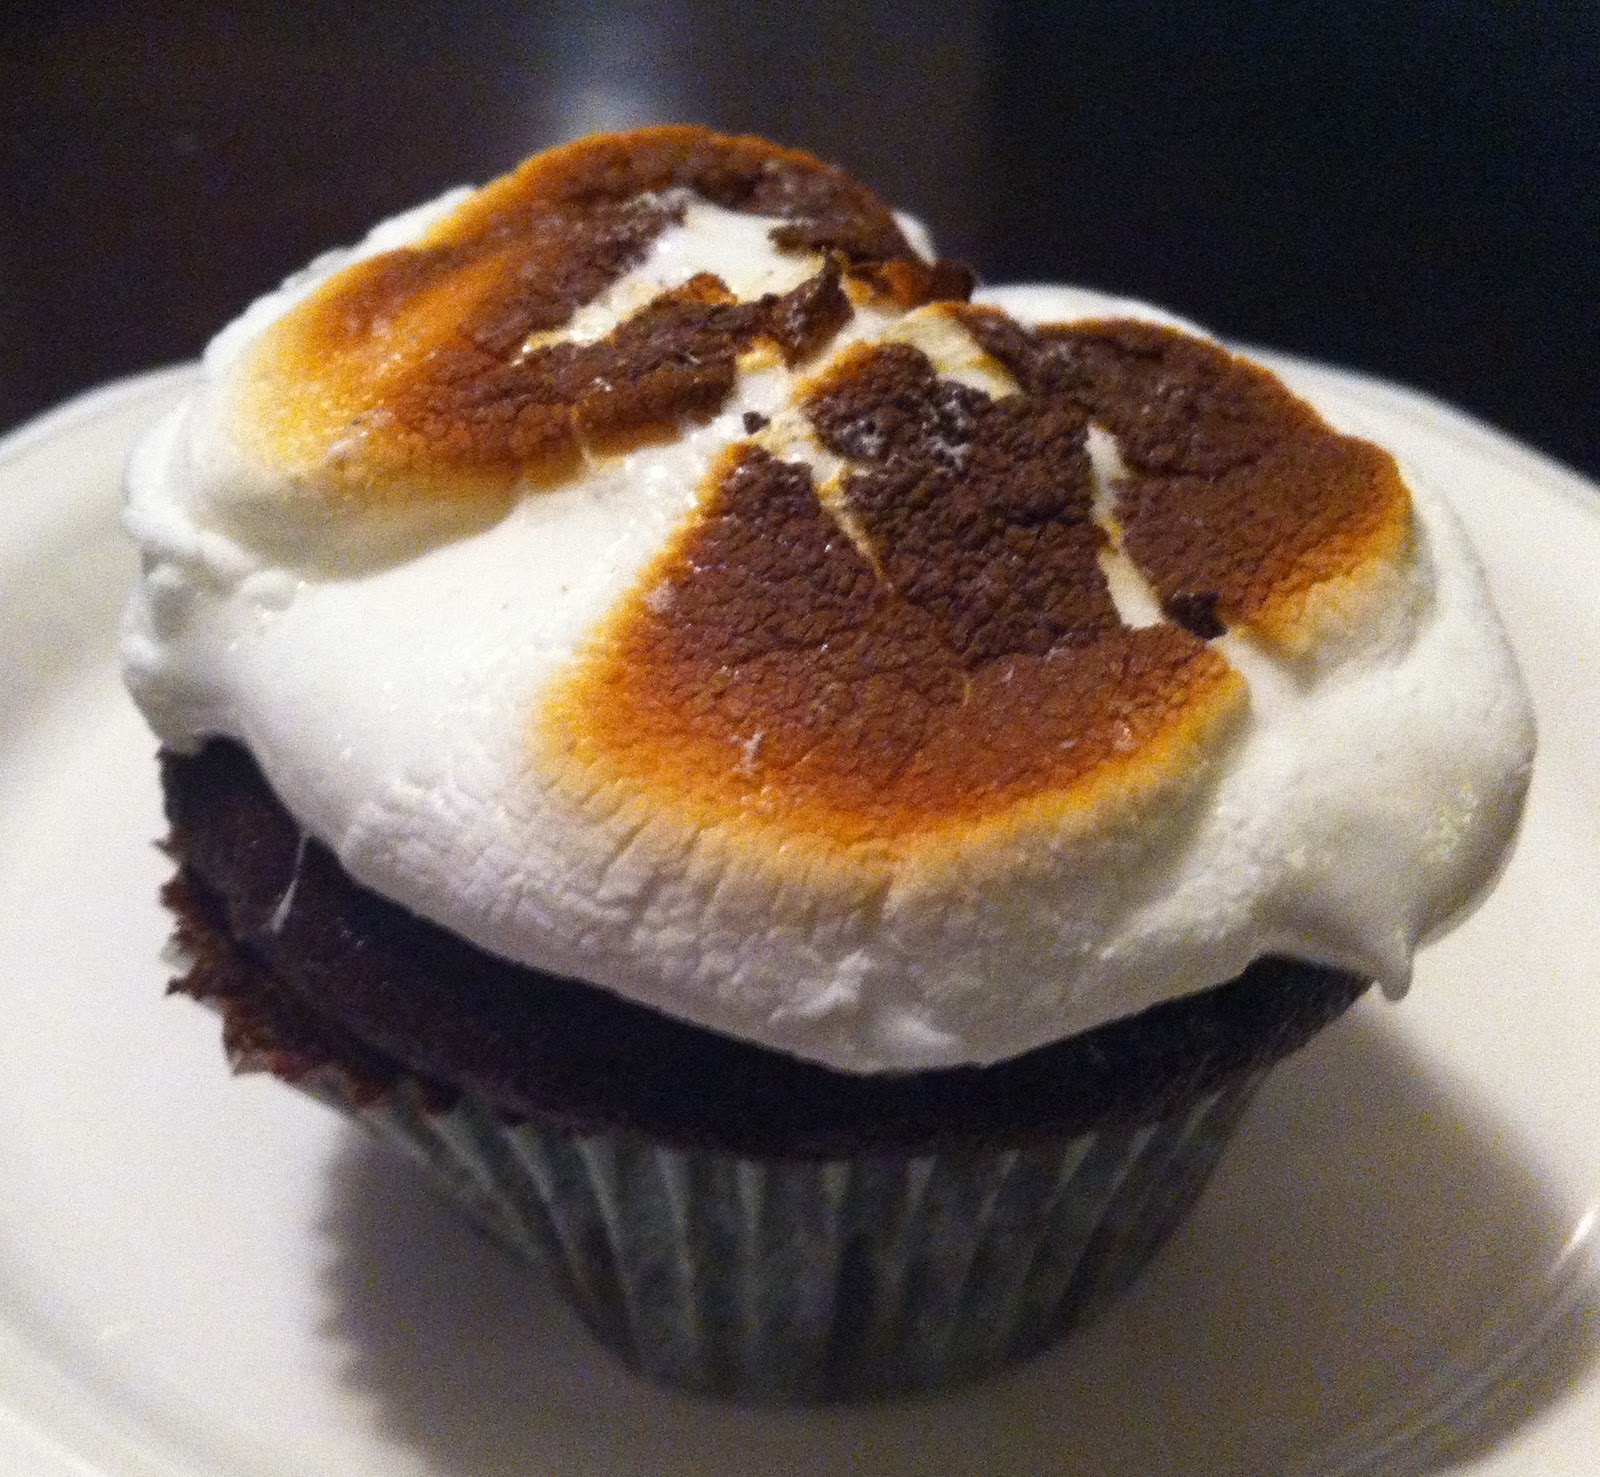 Amy's Kitchen: Toasted Marshmallow Cupcakes